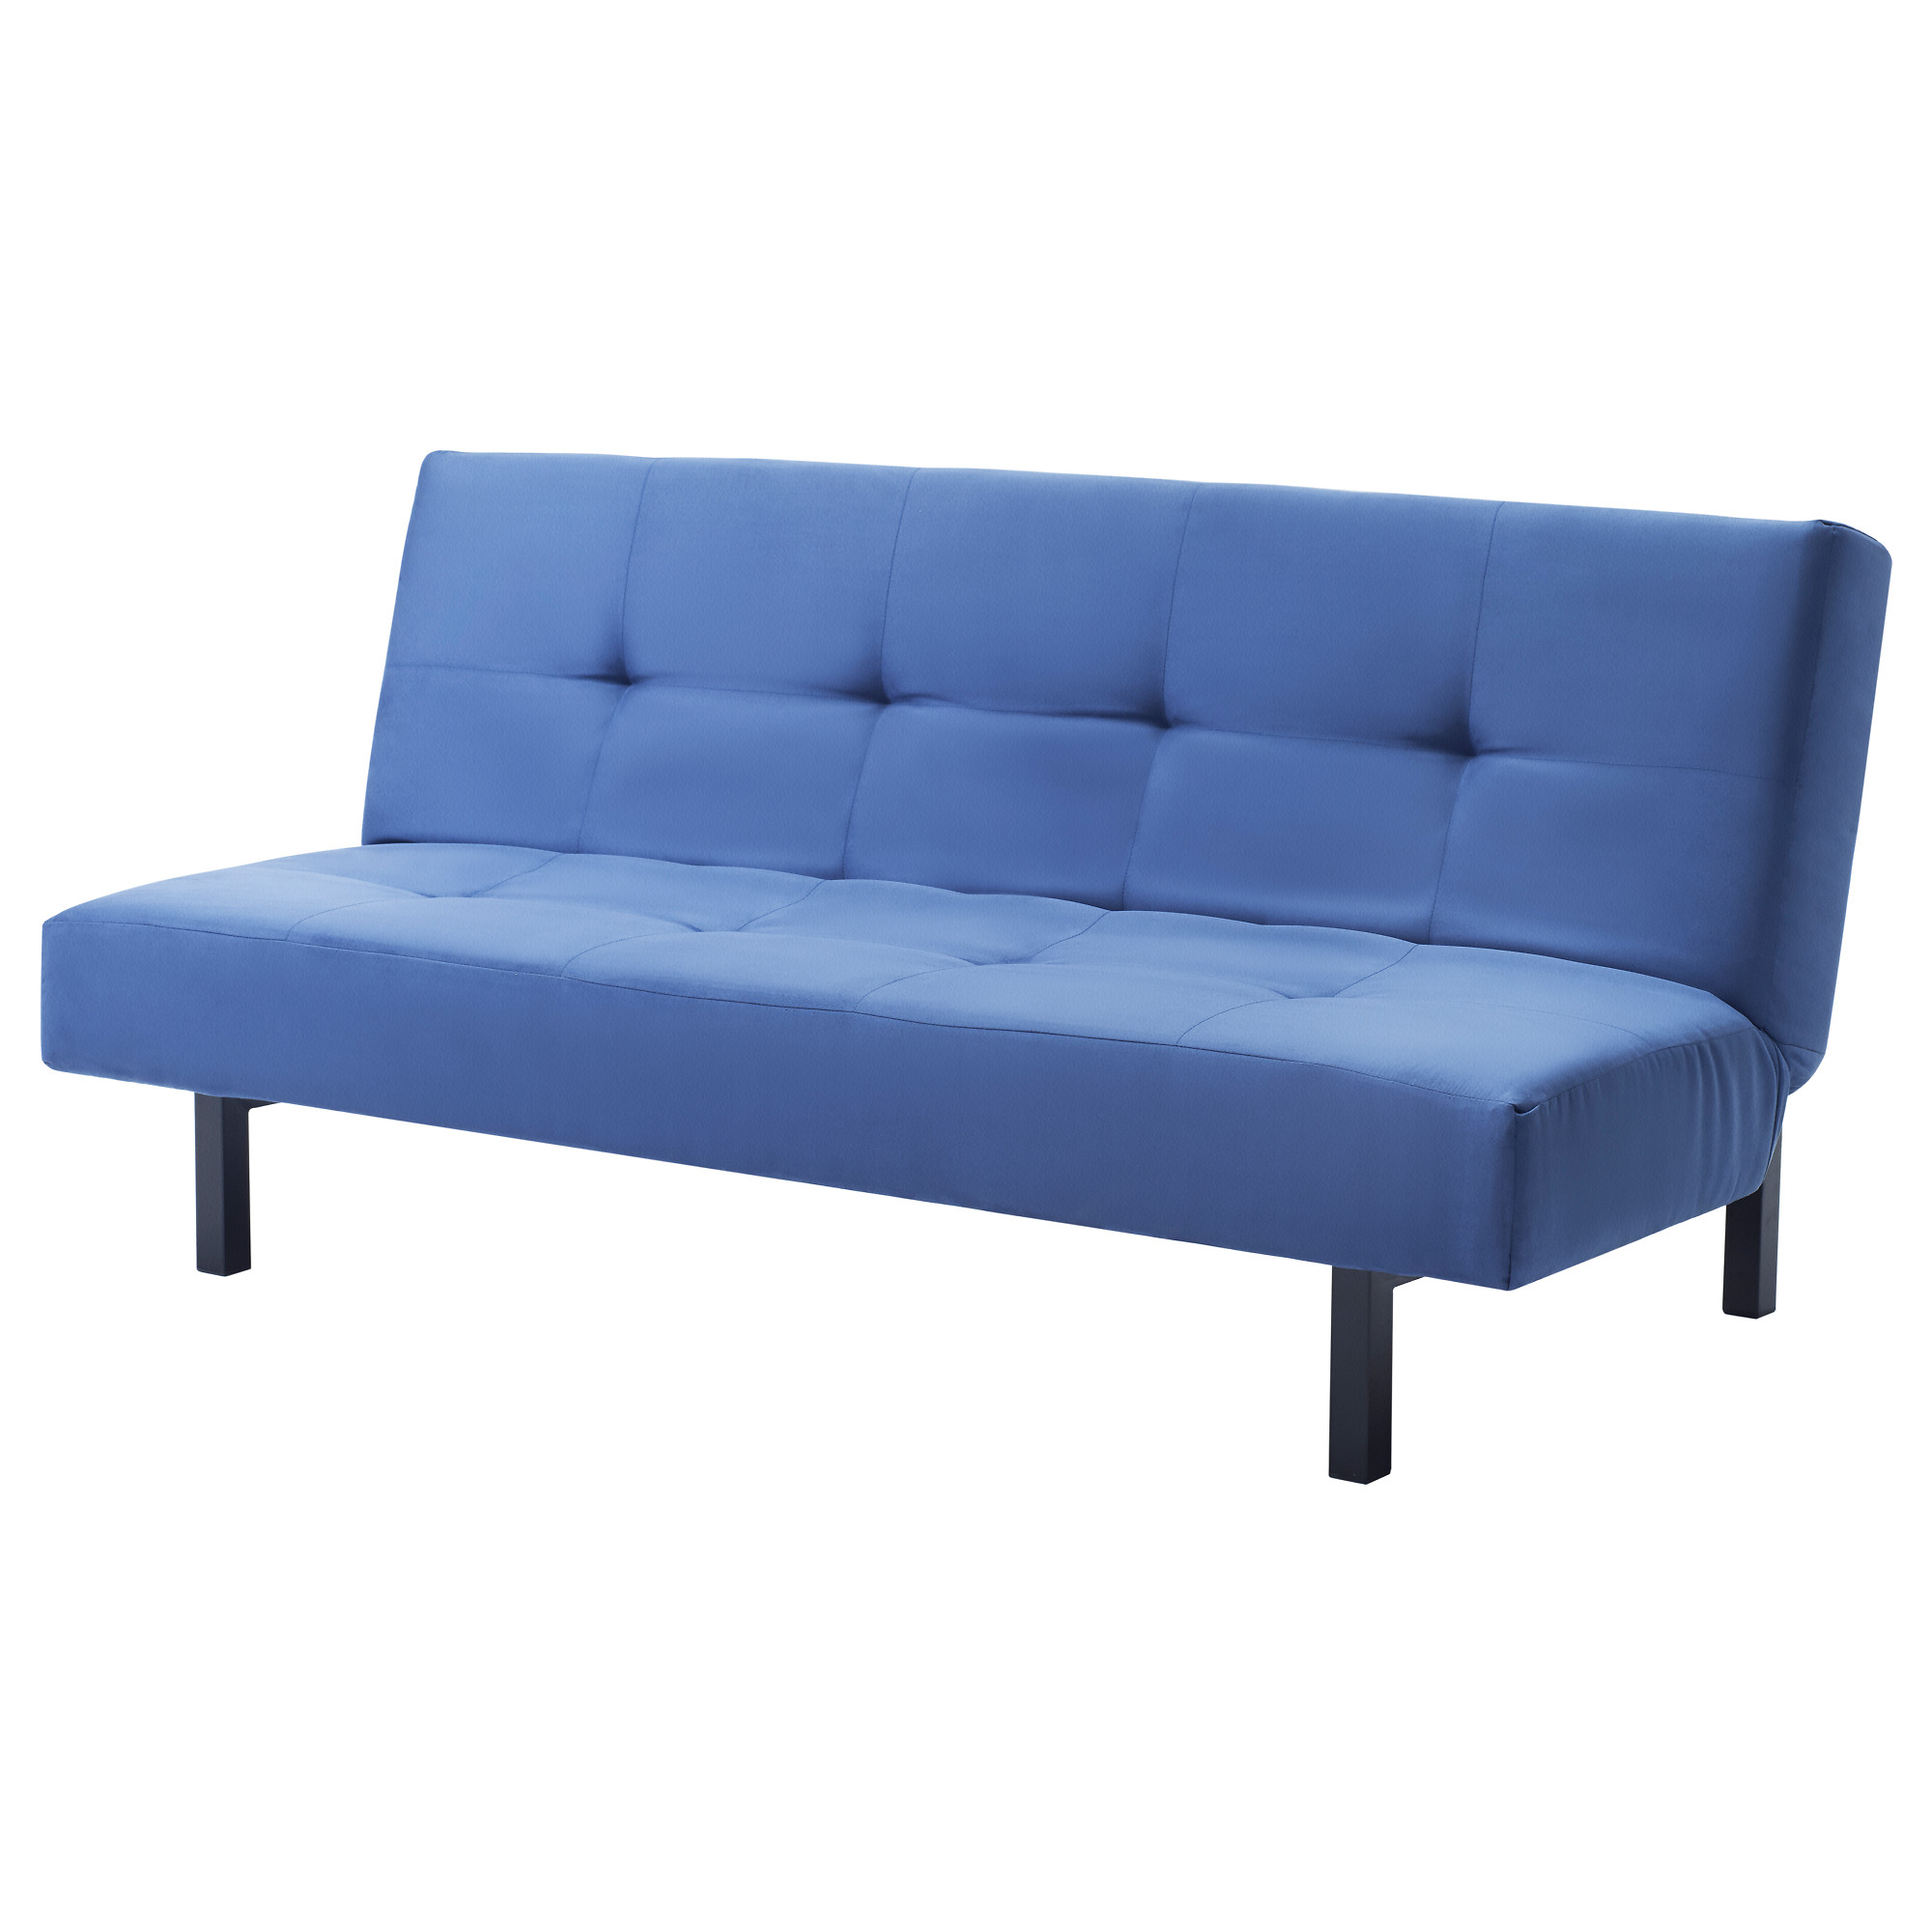 Best sofa sleepers ikea homesfeed for Ikea blue bed